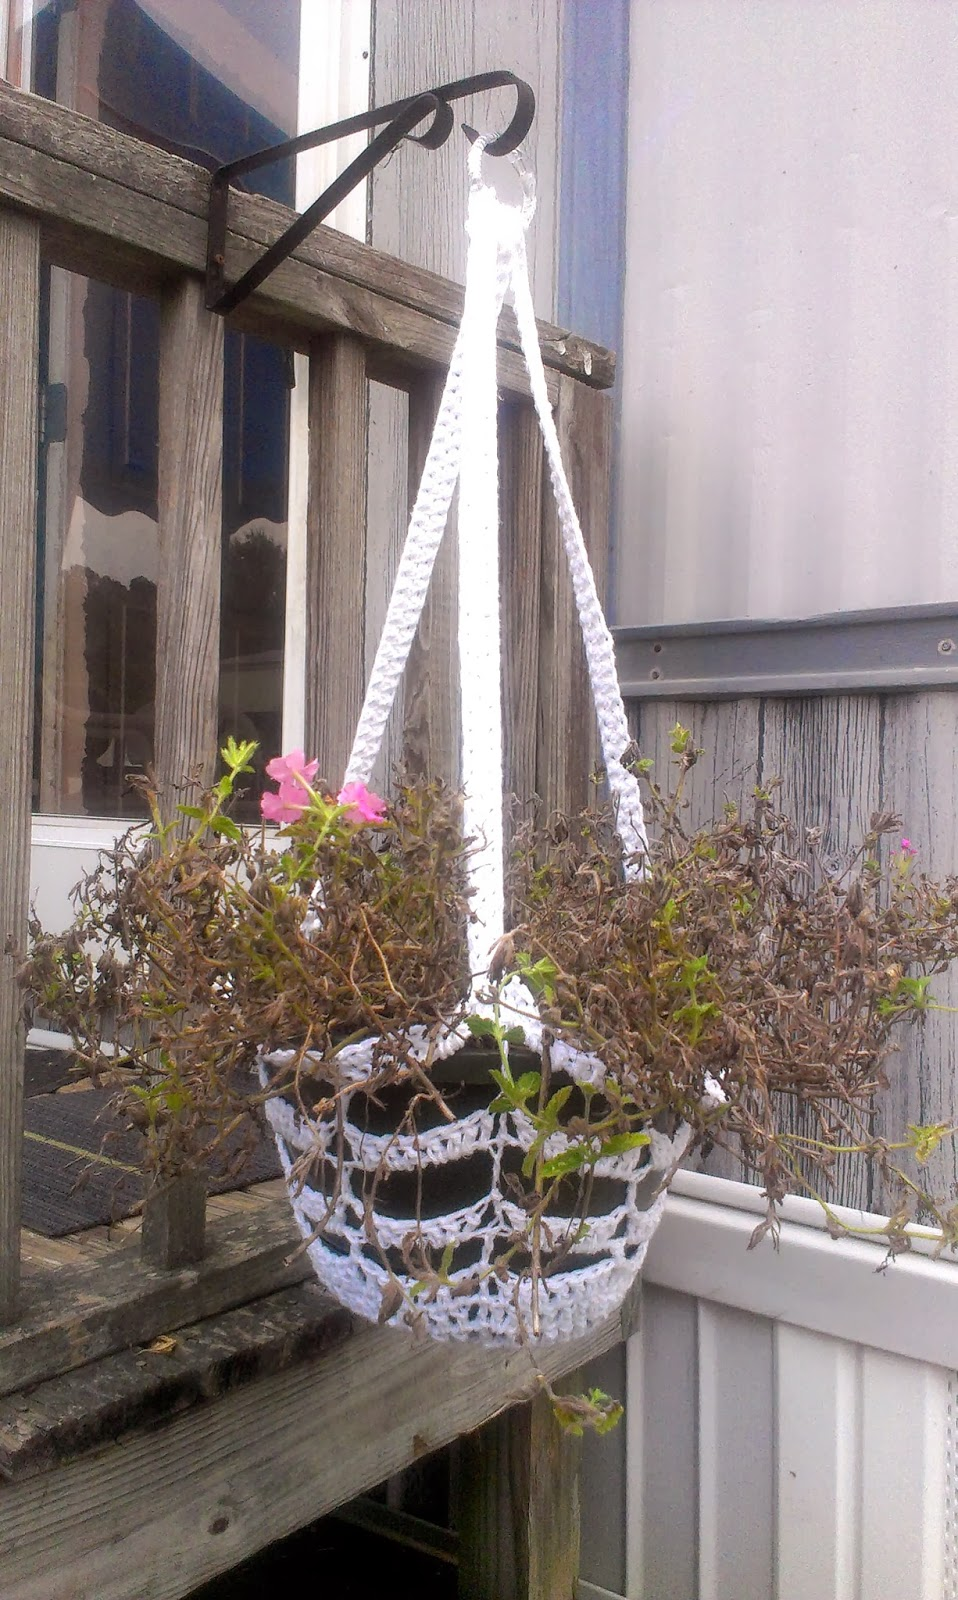 Mama Sweettaters: A New Crochet Plant Hanger